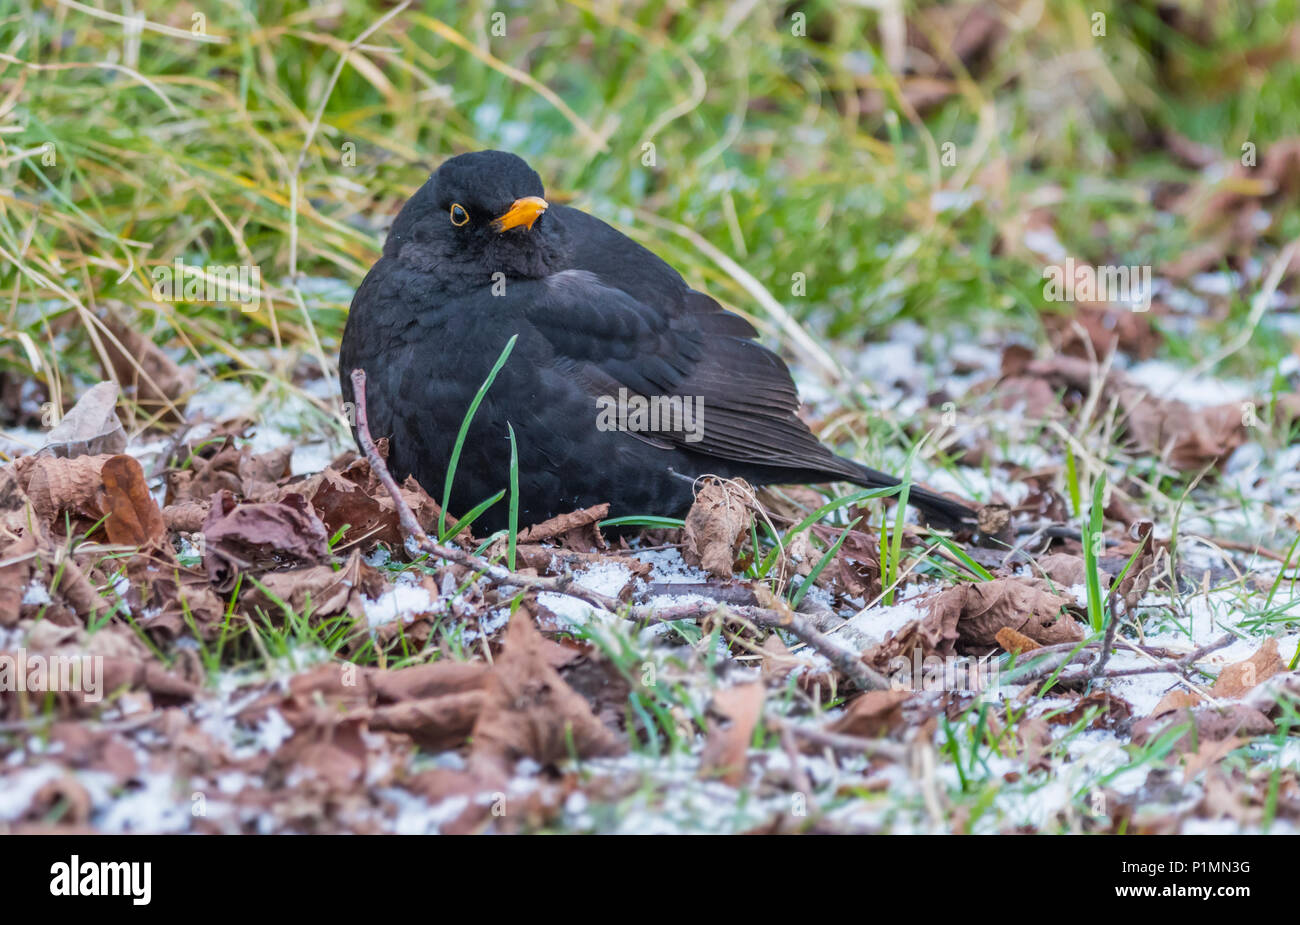 Adult Common Blackbird (Turdus merula) on frost covered ground in Winter in West Sussex, England, UK. - Stock Image